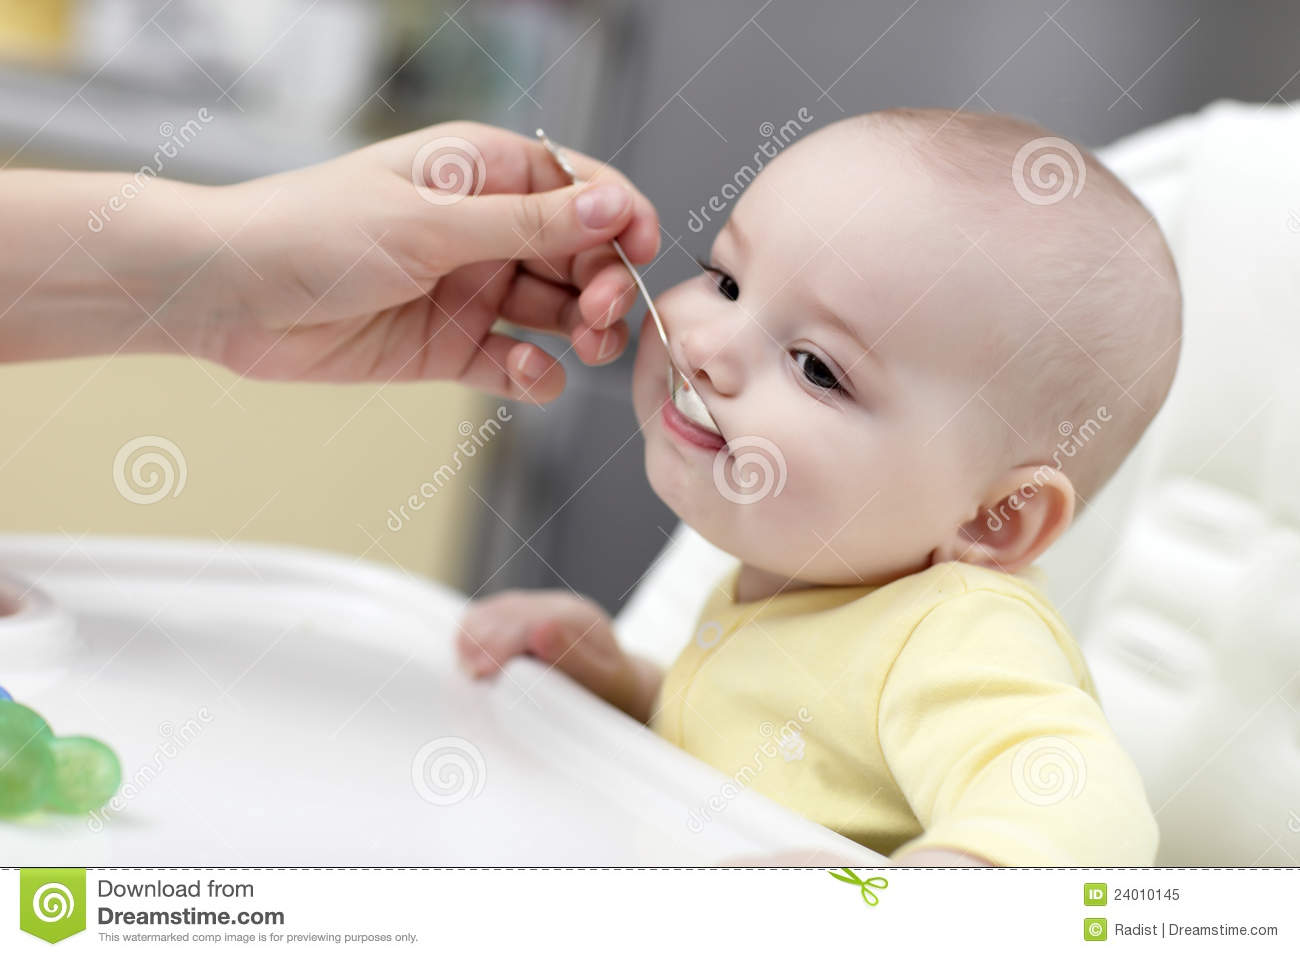 baby eating with spoon royalty free stock photo